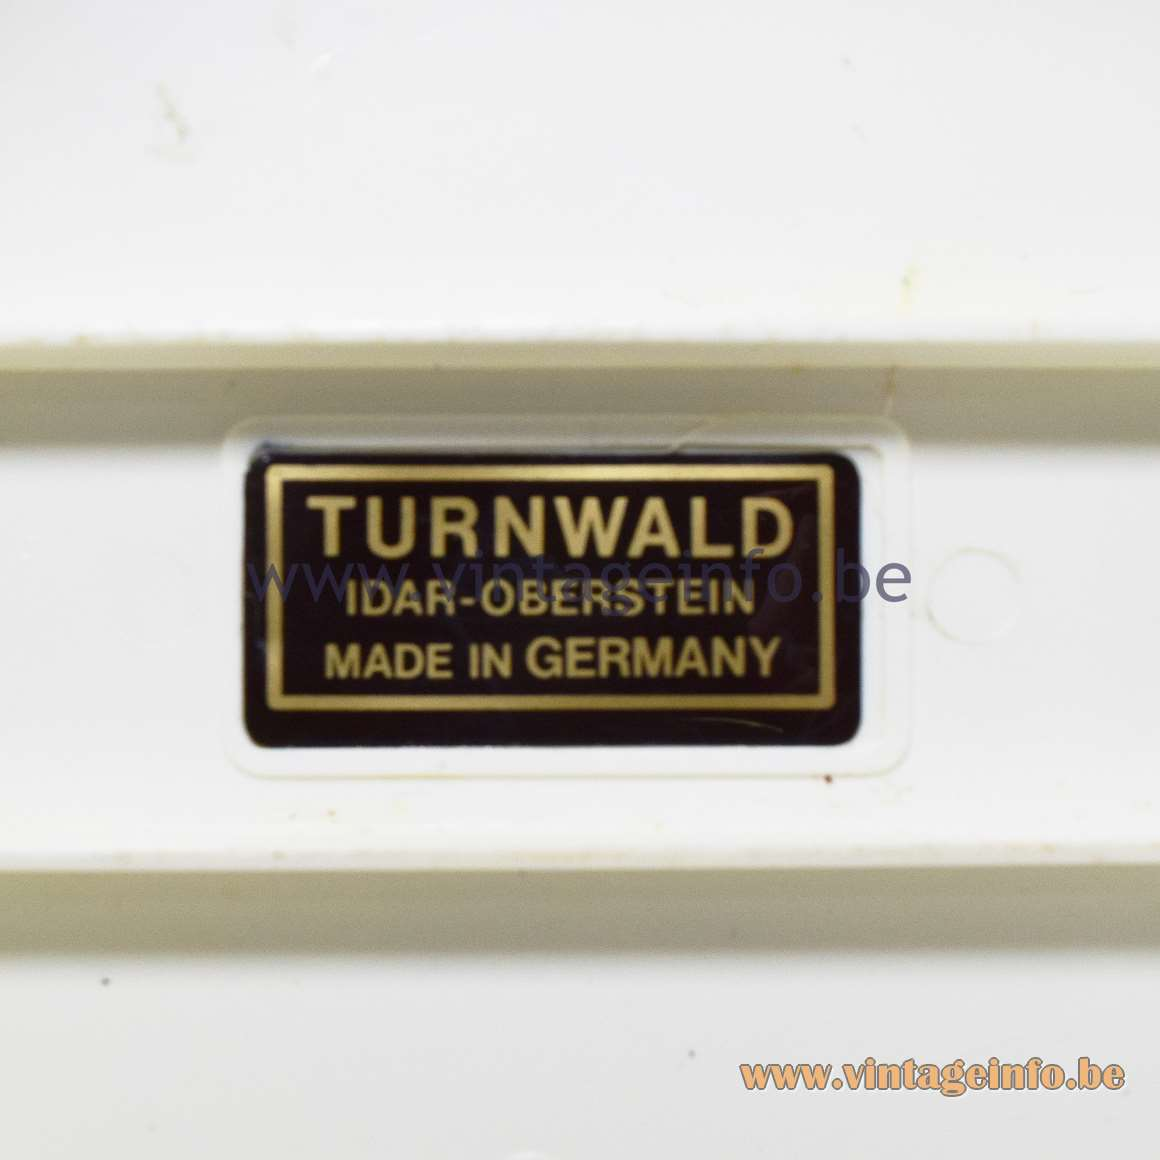 Turnwald Label Idar-Oberstein Made In Germany